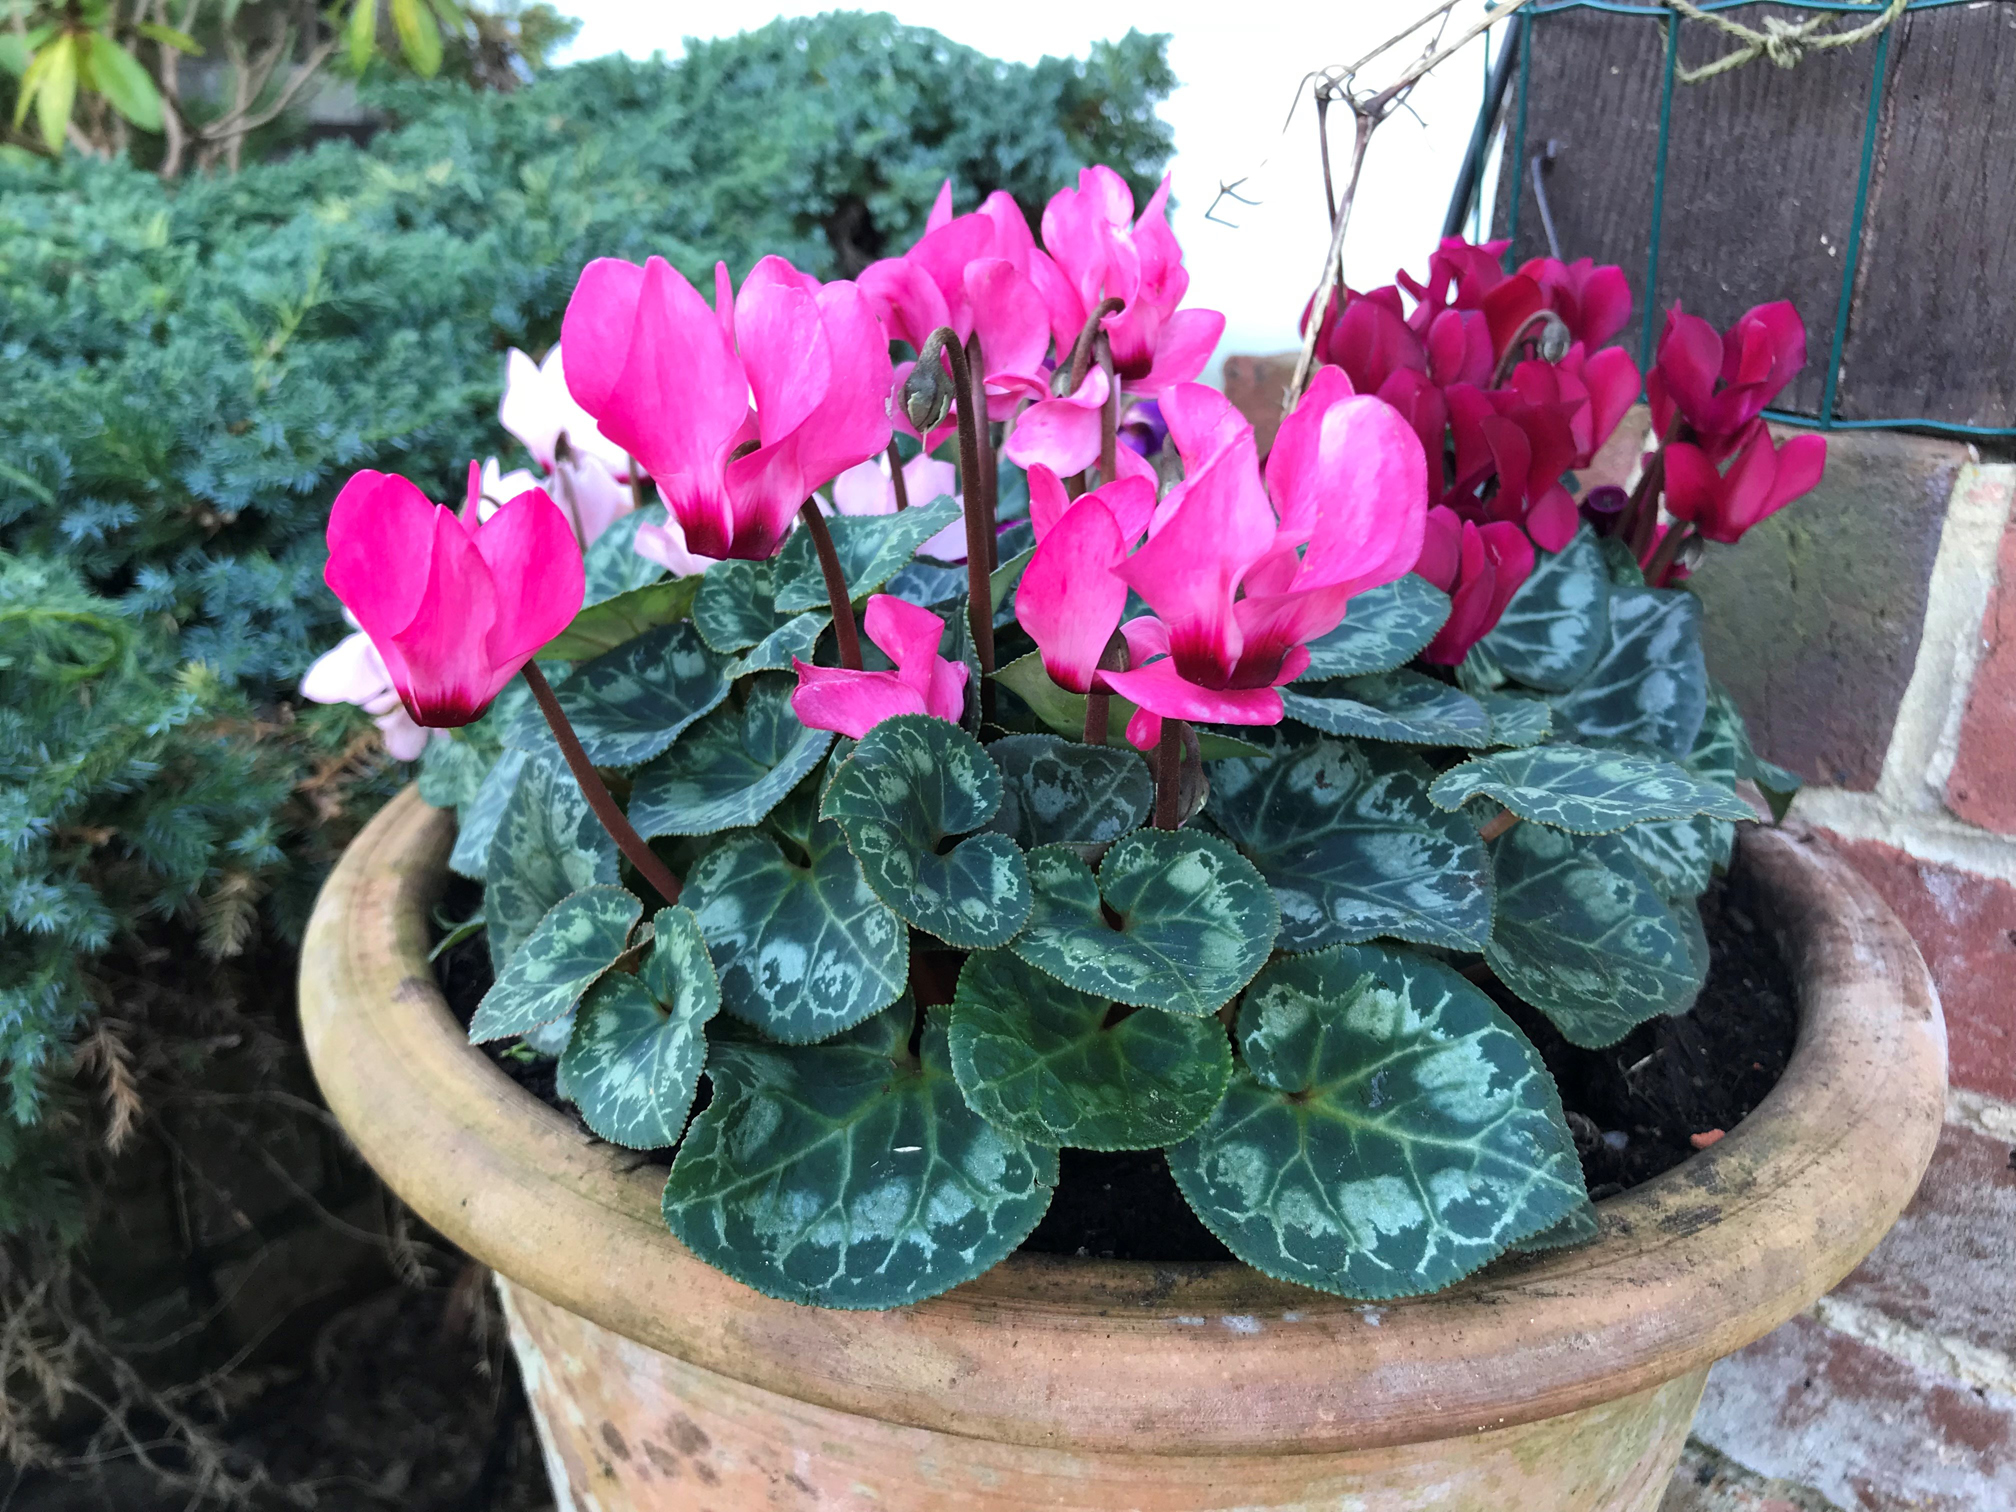 Underplant perennial climbers with colourful cyclamen. (Hannah Stephenson/PA)